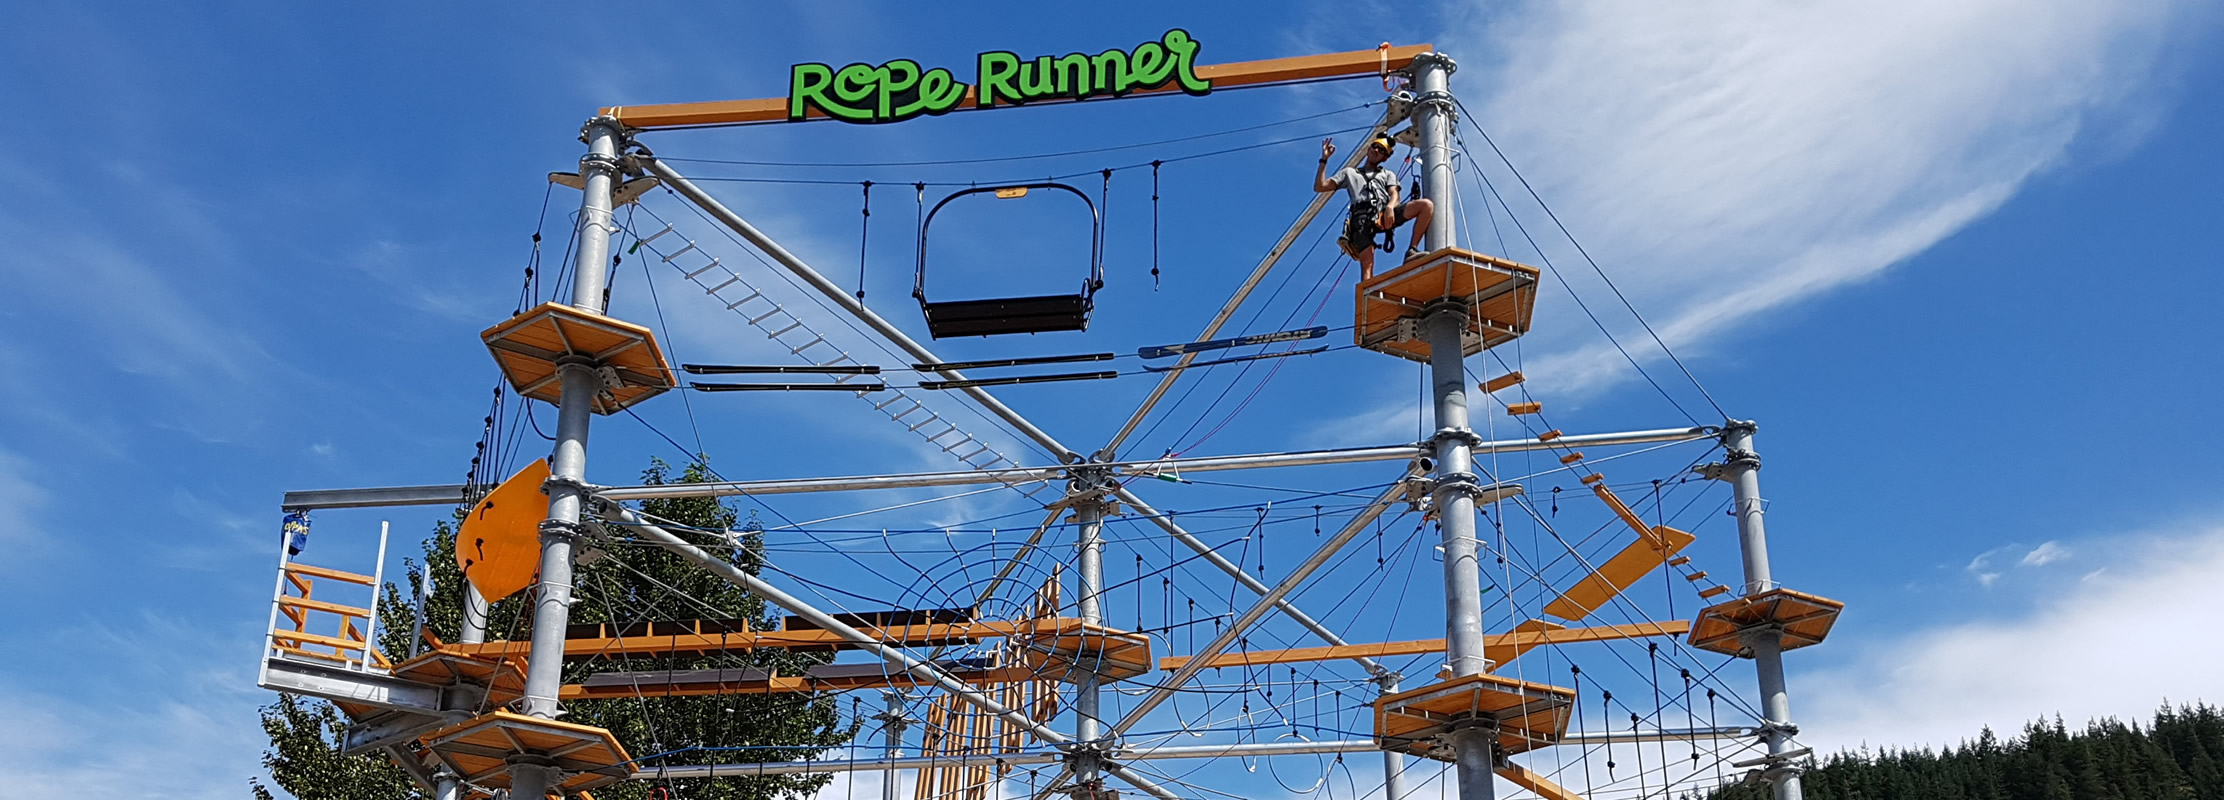 Rope Runner Aerial Adventure Park Squamish